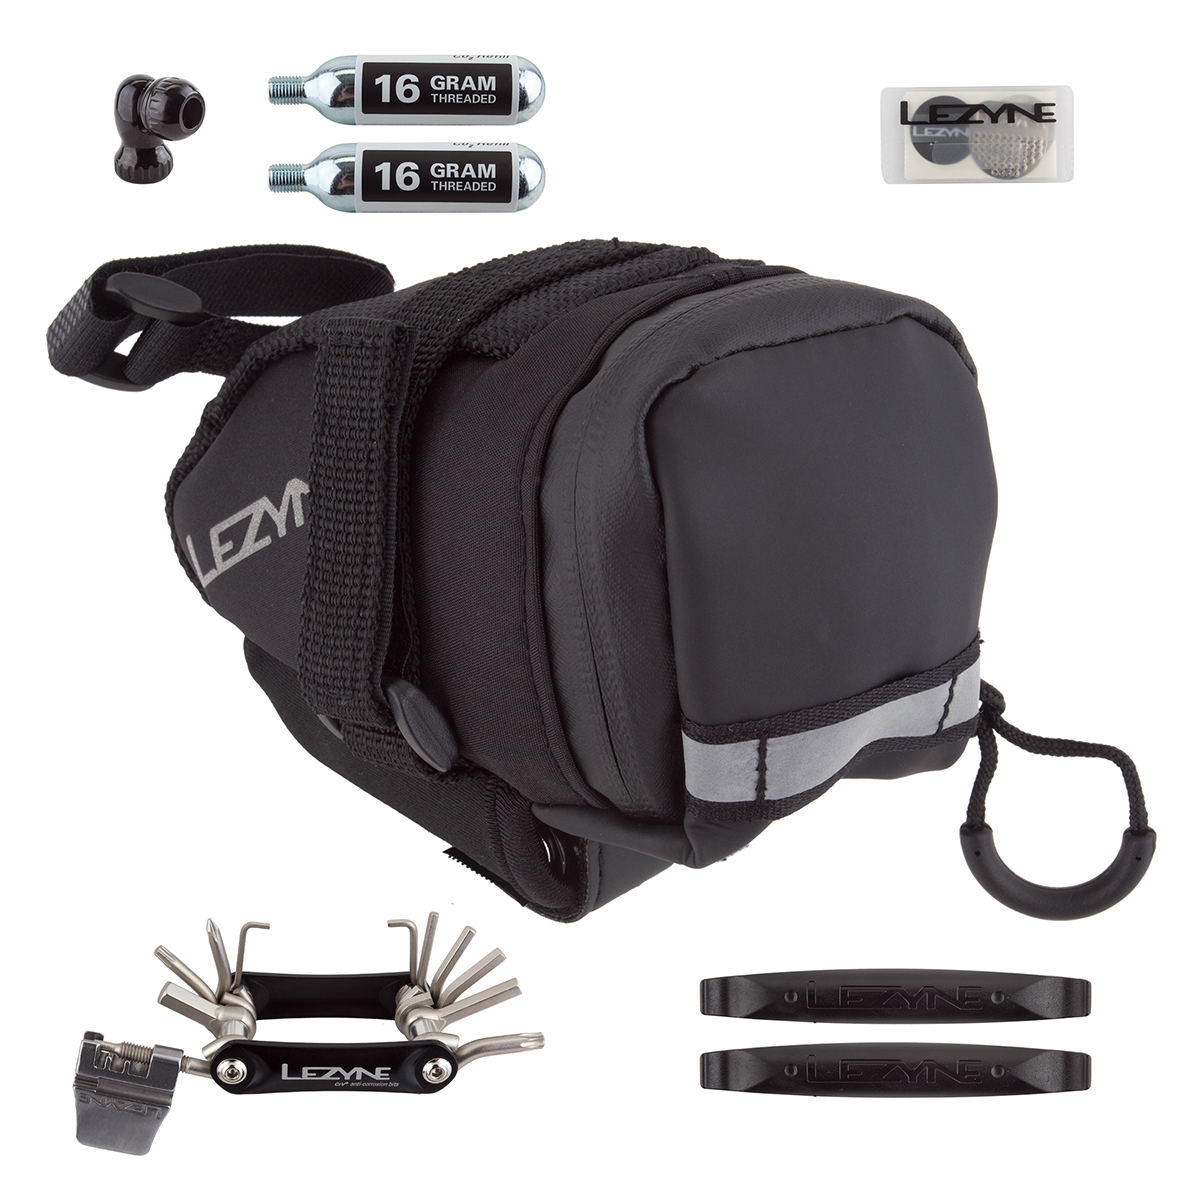 Lezyne M-Caddy Seat Bag with Twin Speed Drive 16g CO2, Rap6 Tool, SmartKit, and Composite Matrix Tire Levers: Black